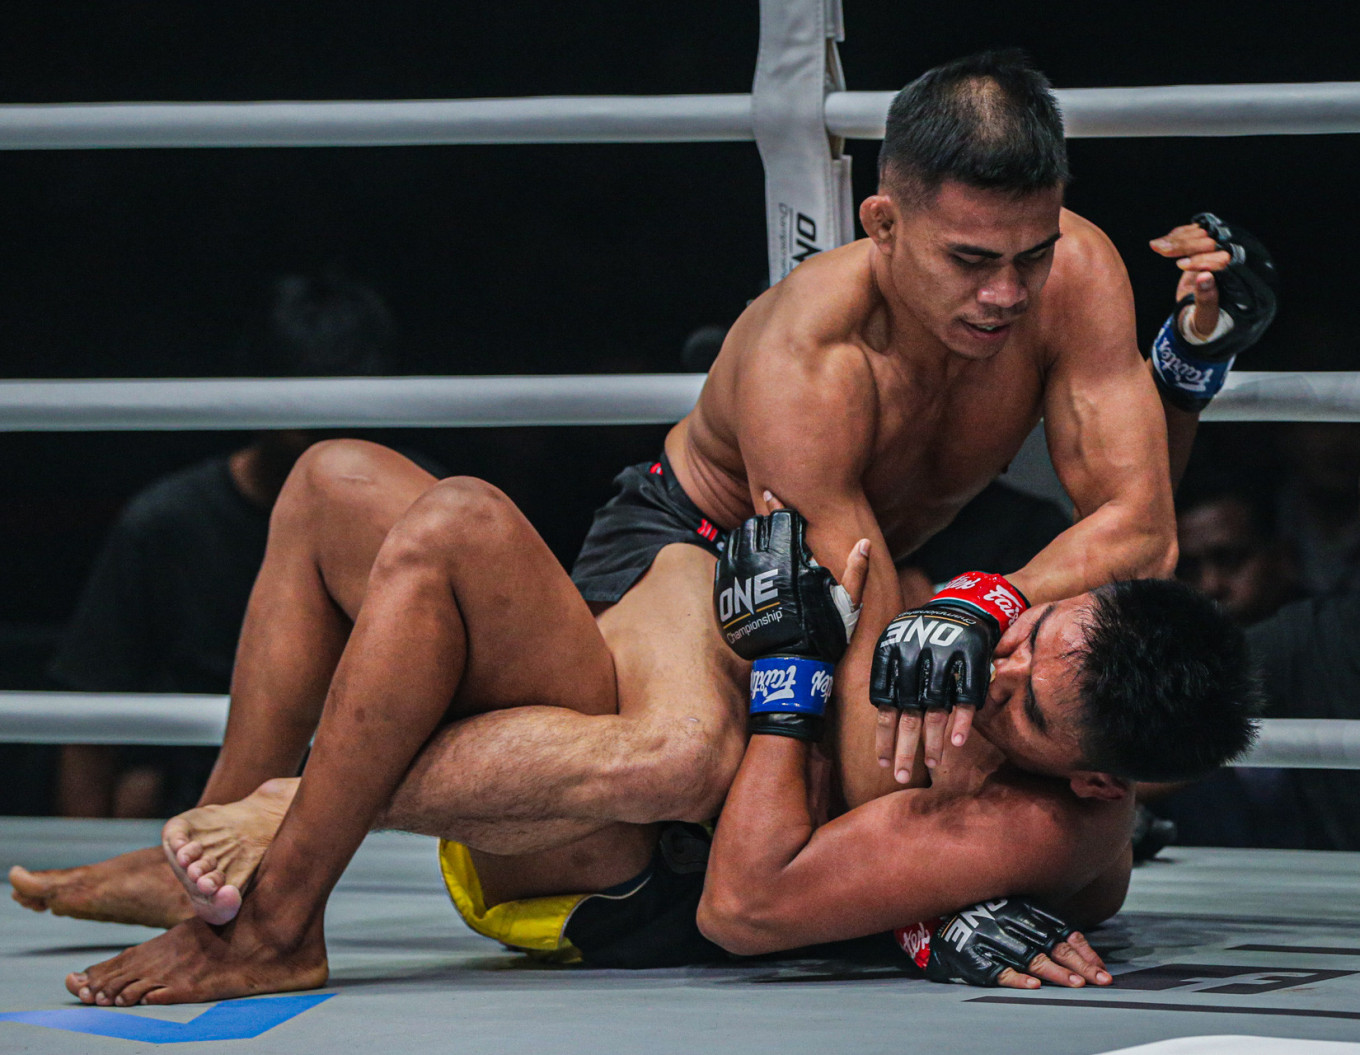 MMA fighter Eko Roni proves his point by overpowering Sichan in first round